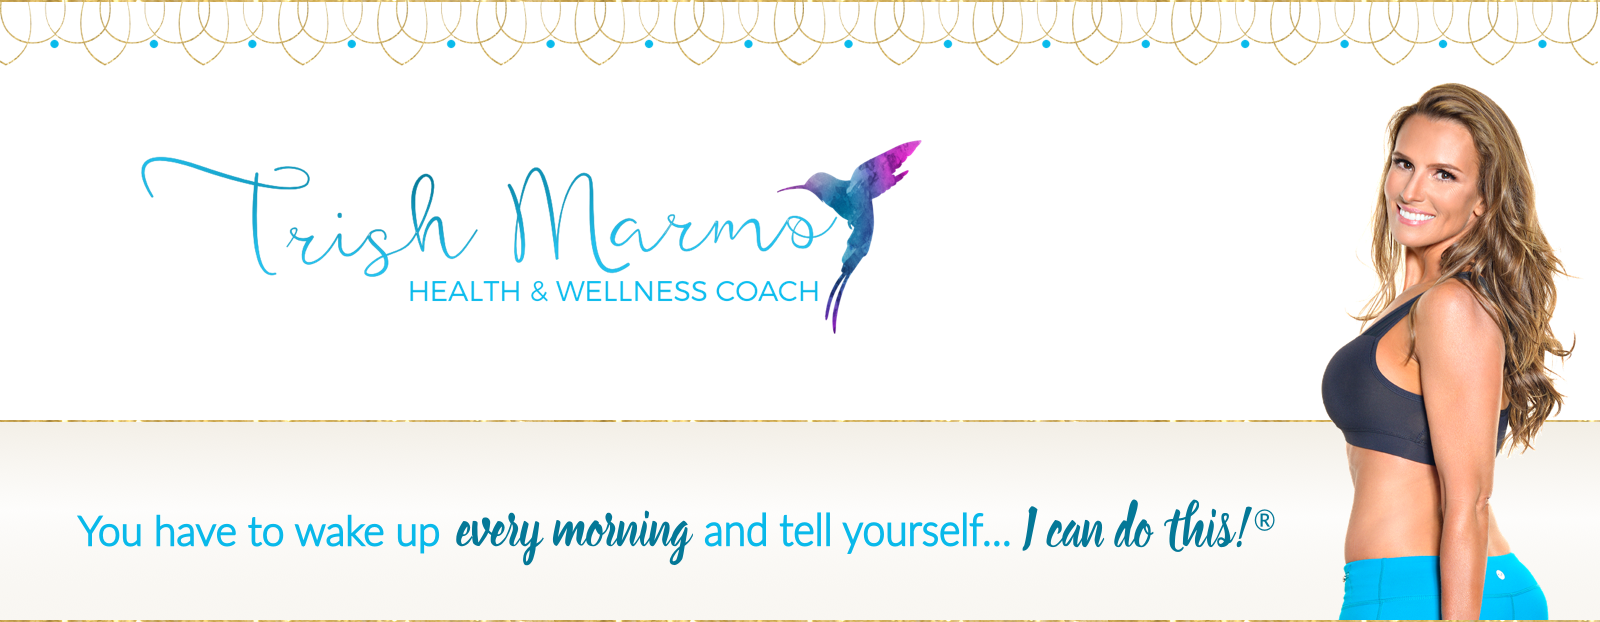 Trish Marma, Health & Wellness Coach